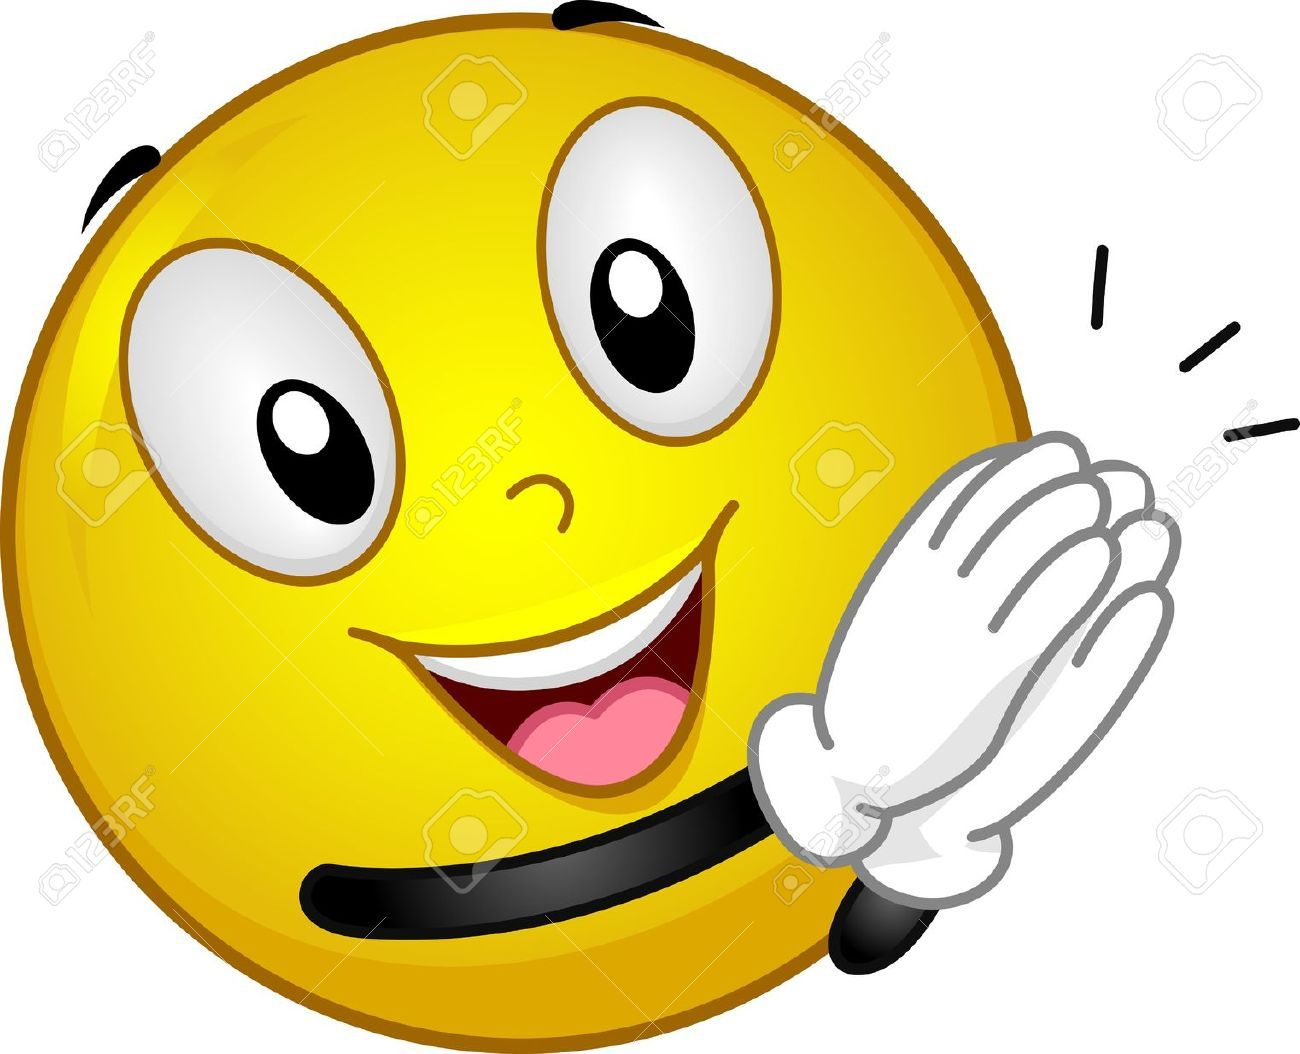 Clapping Images Stock Pictures Royalty Free Clapping Photos And Stock Photography Funny Emoticons Emoticon Smiley